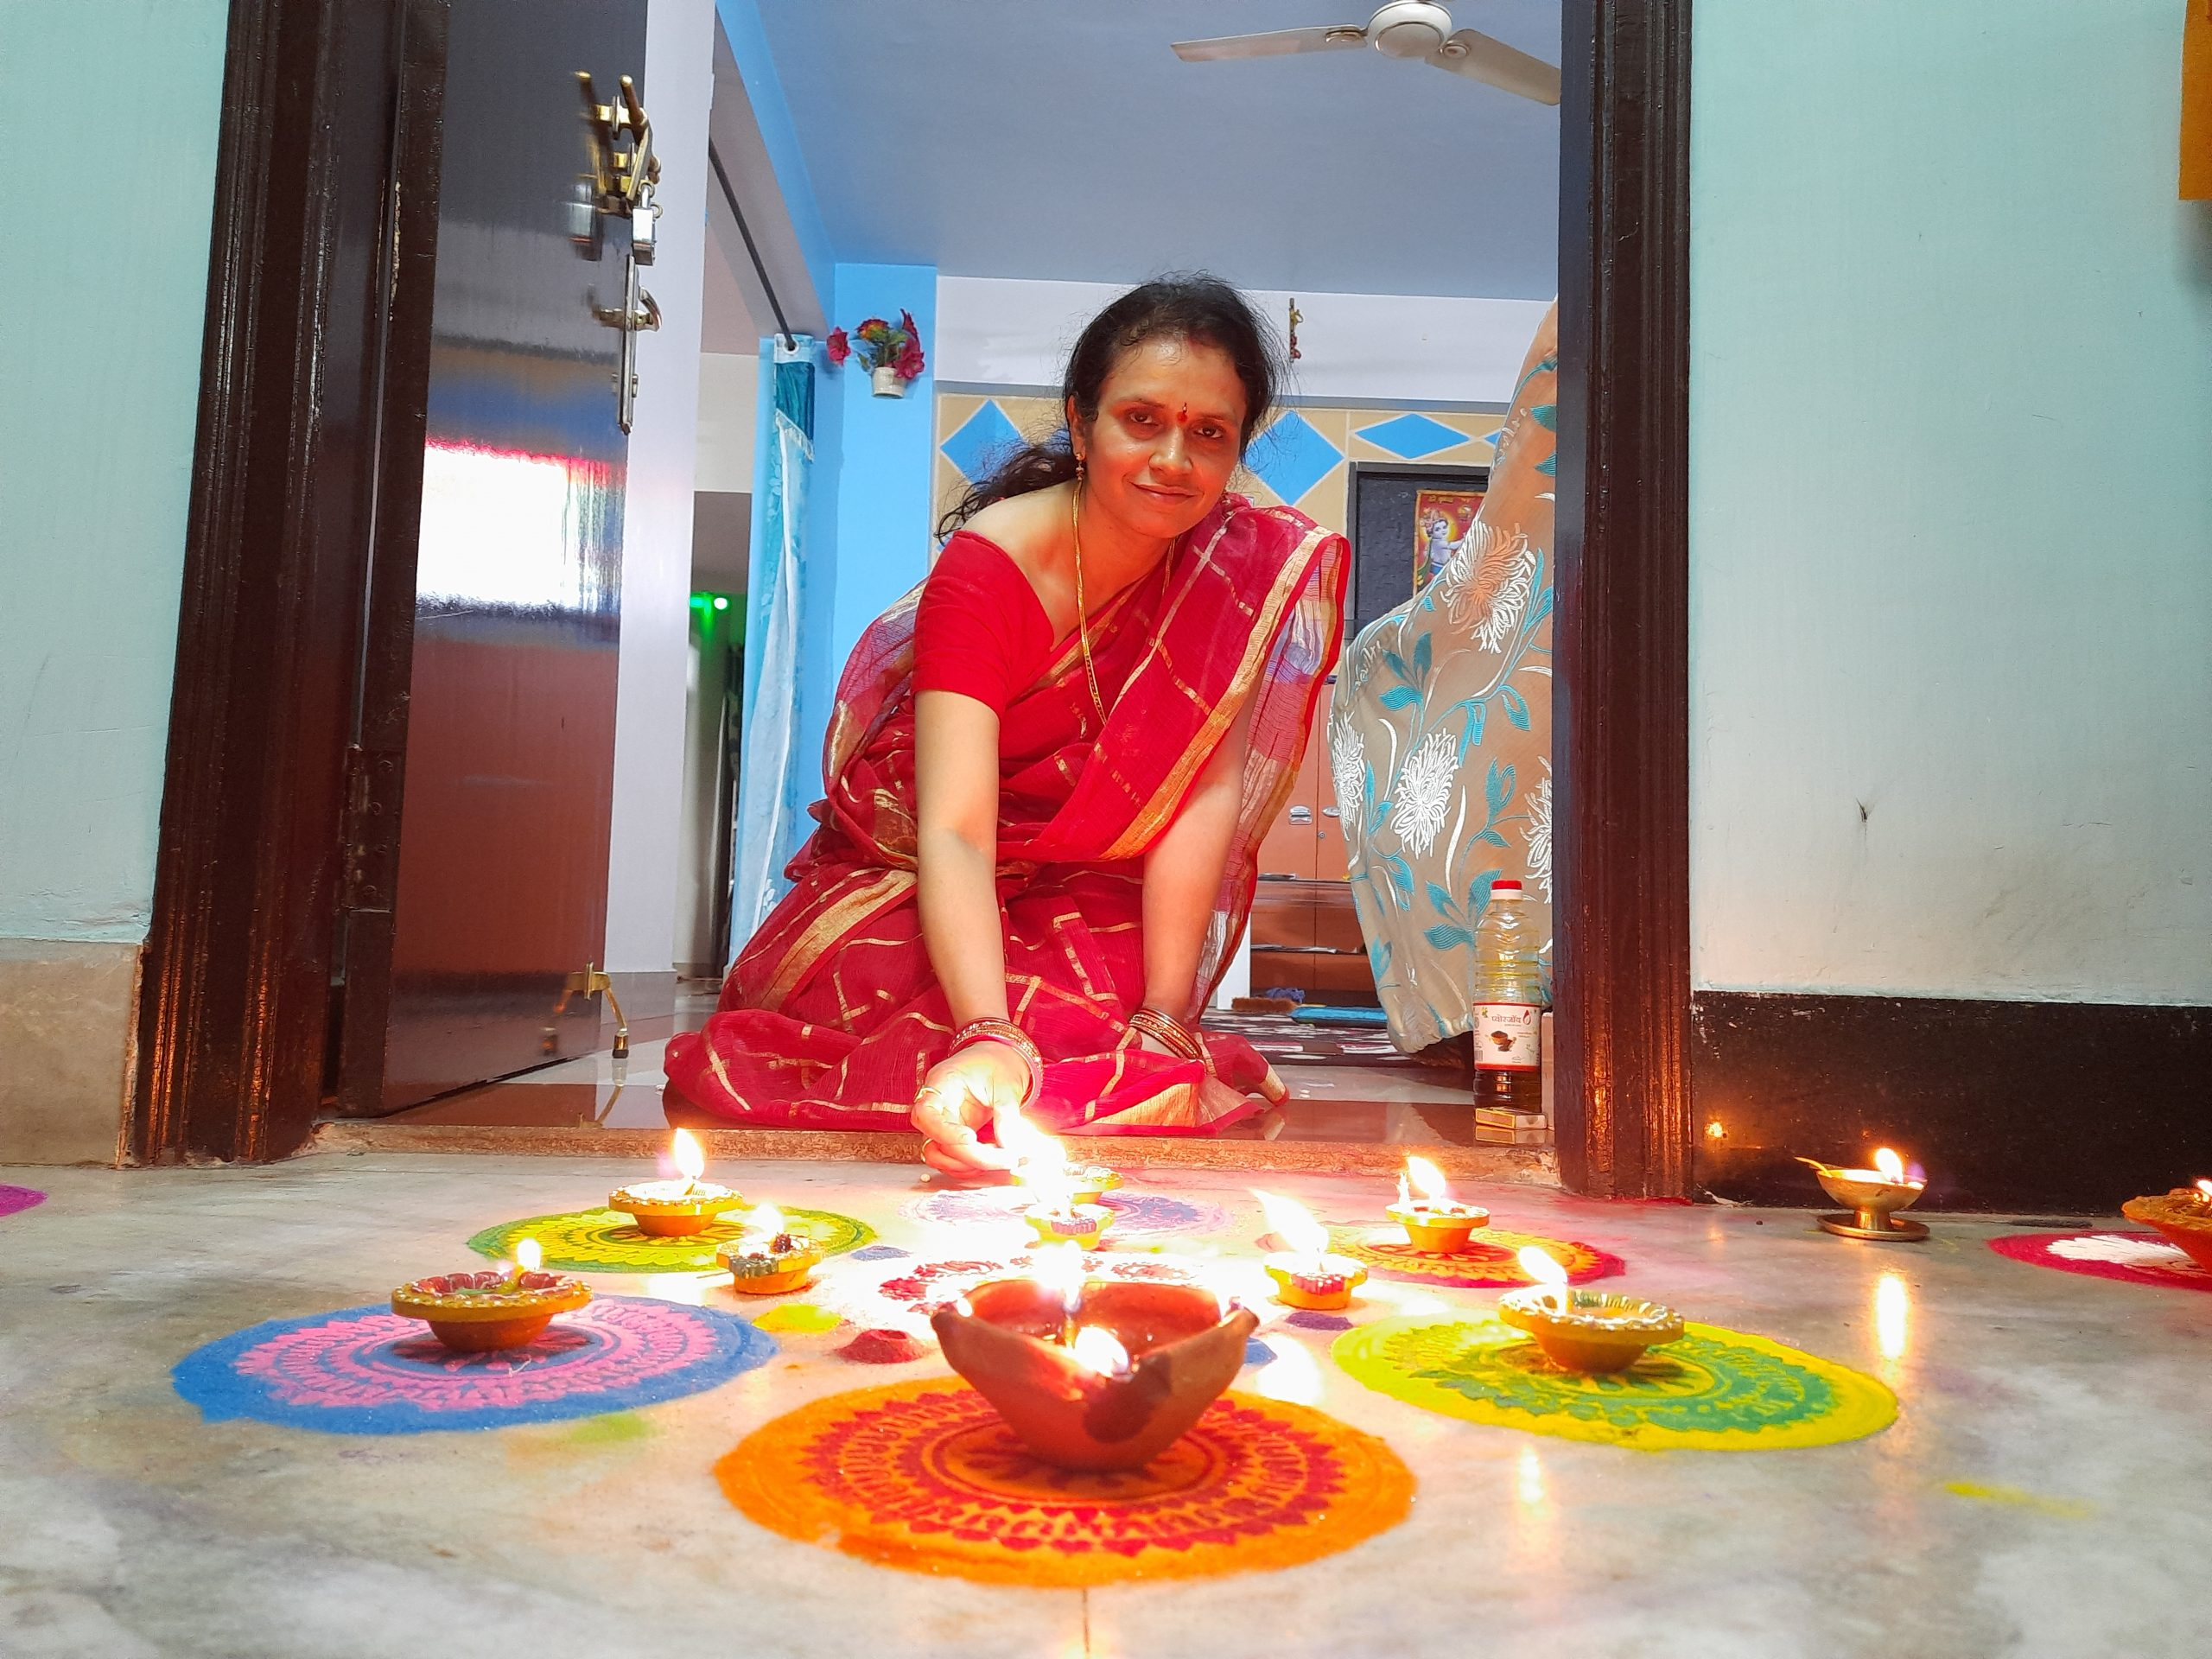 A woman with oil lamps and colorful design